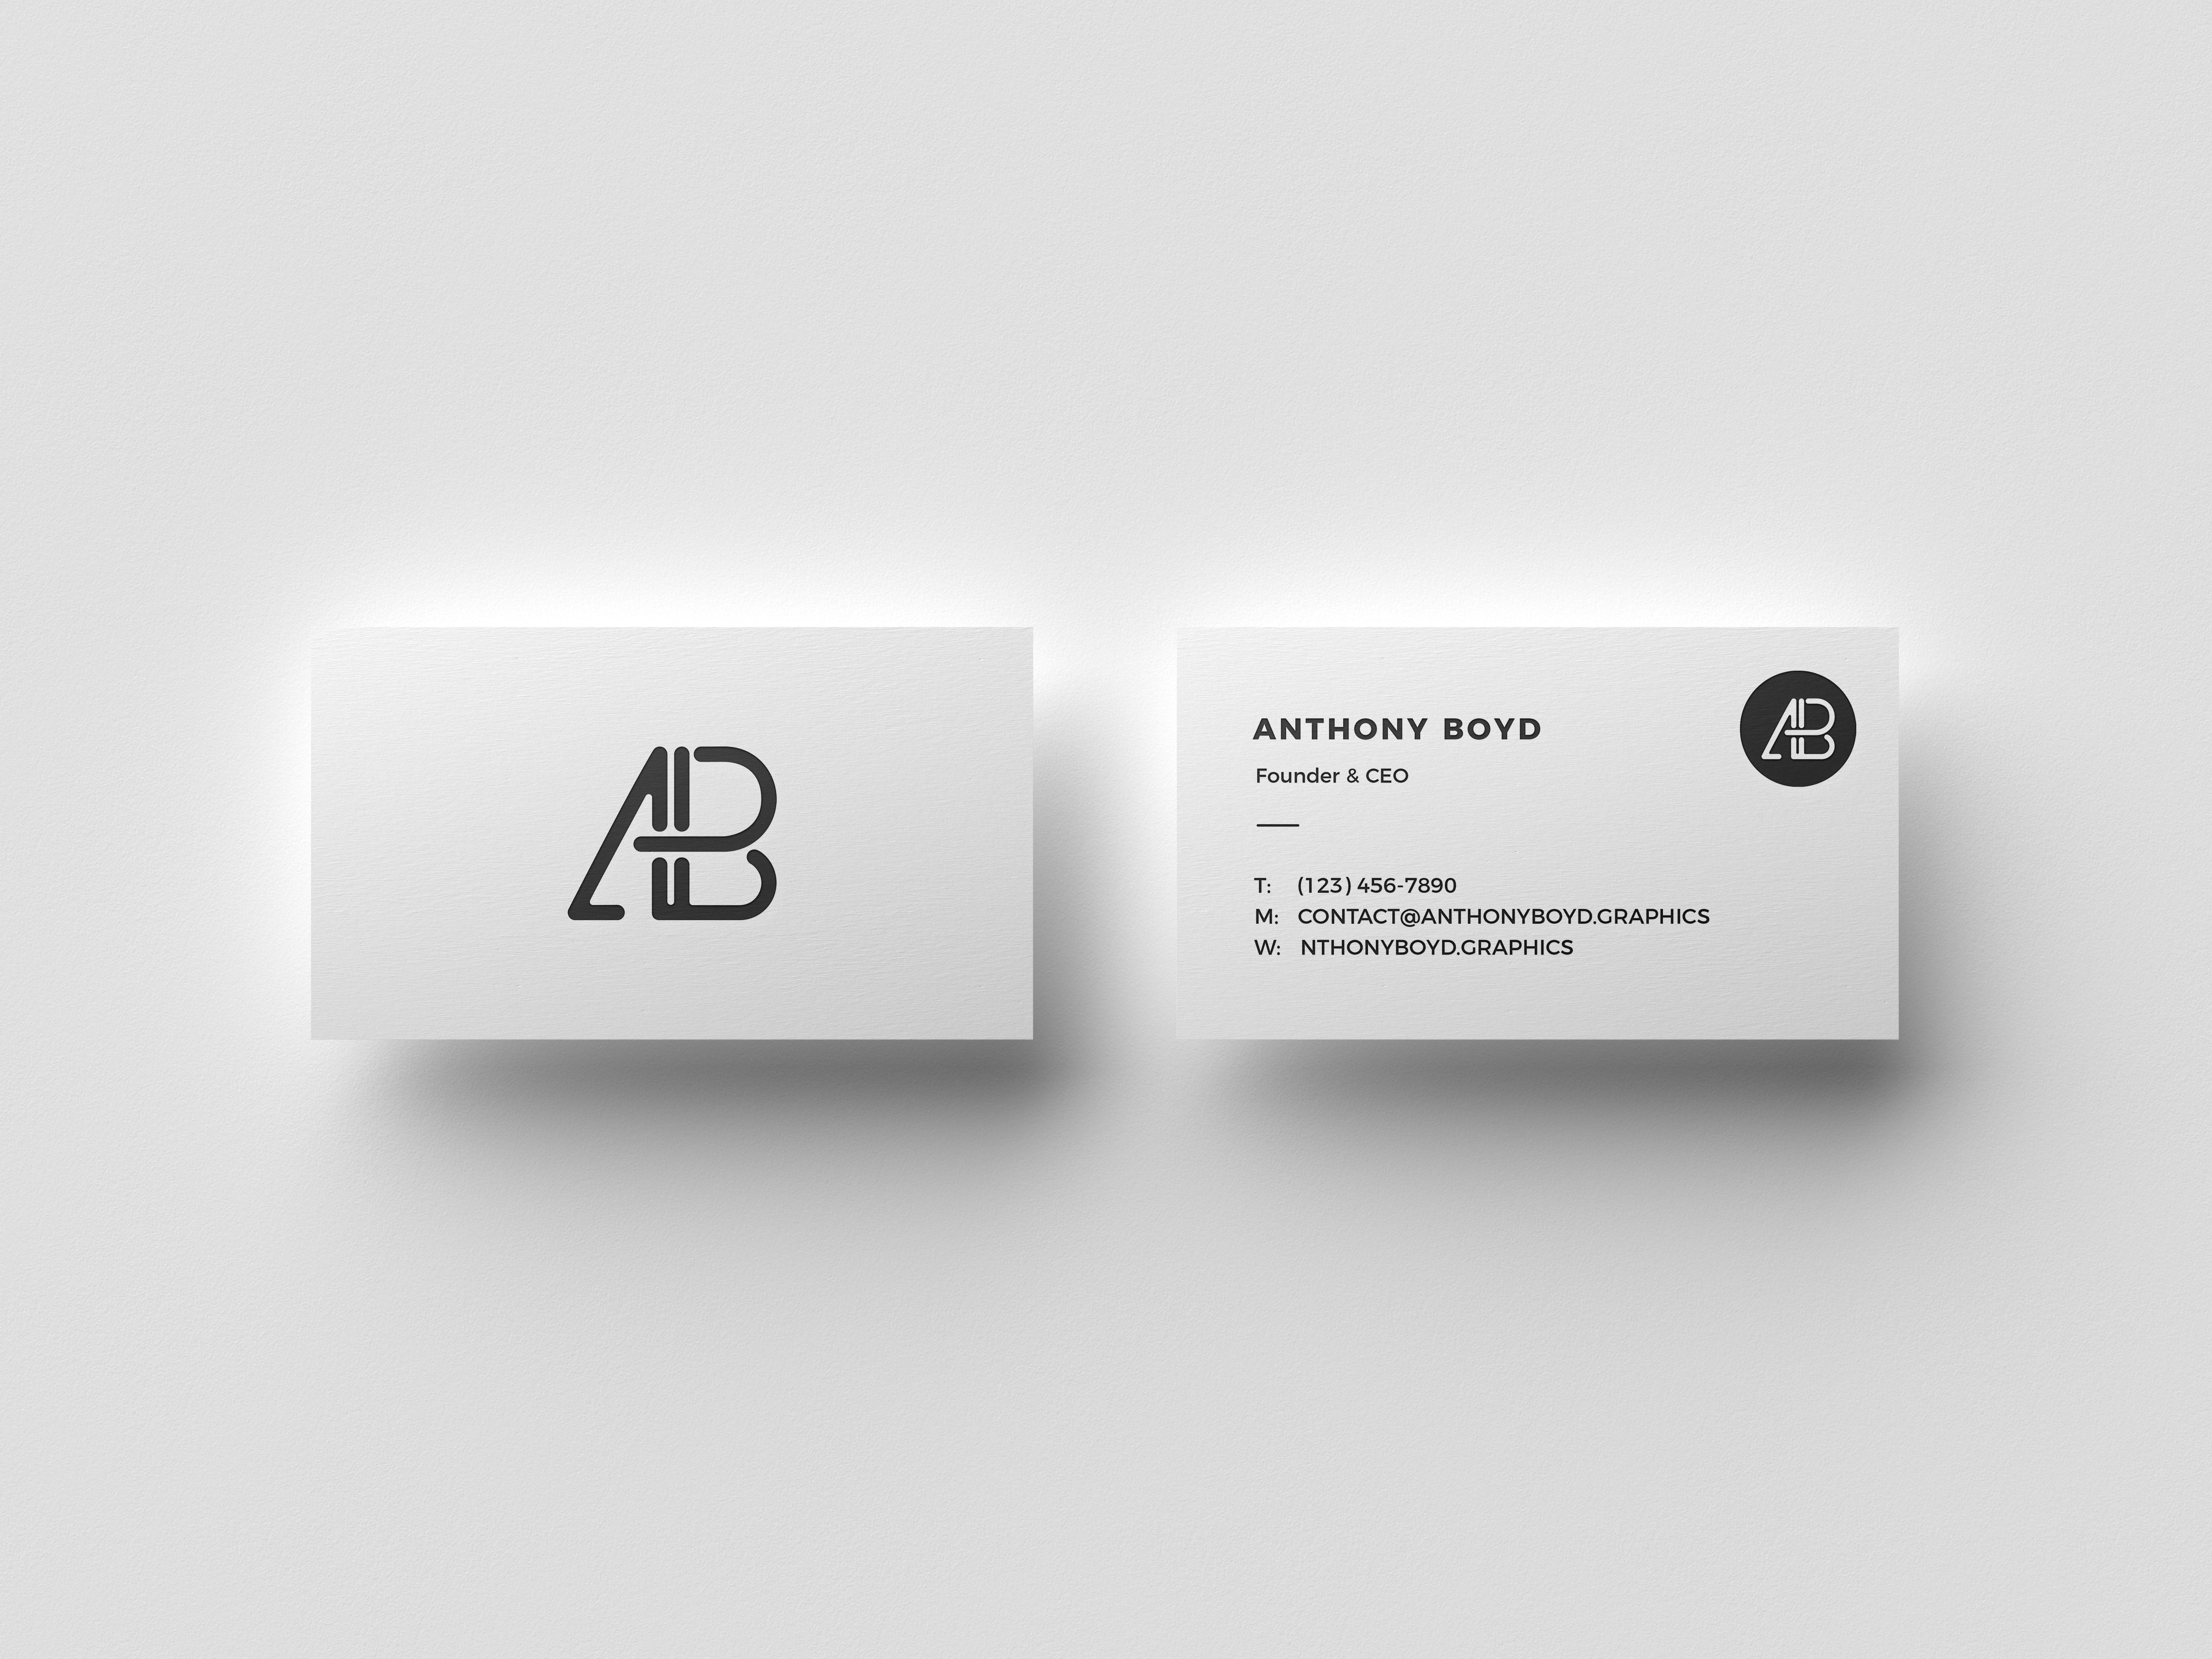 Business card top view mockup pinterest minimal business card todays freebie is a business card top view mockup by anthony boyd graphics use this reheart Choice Image